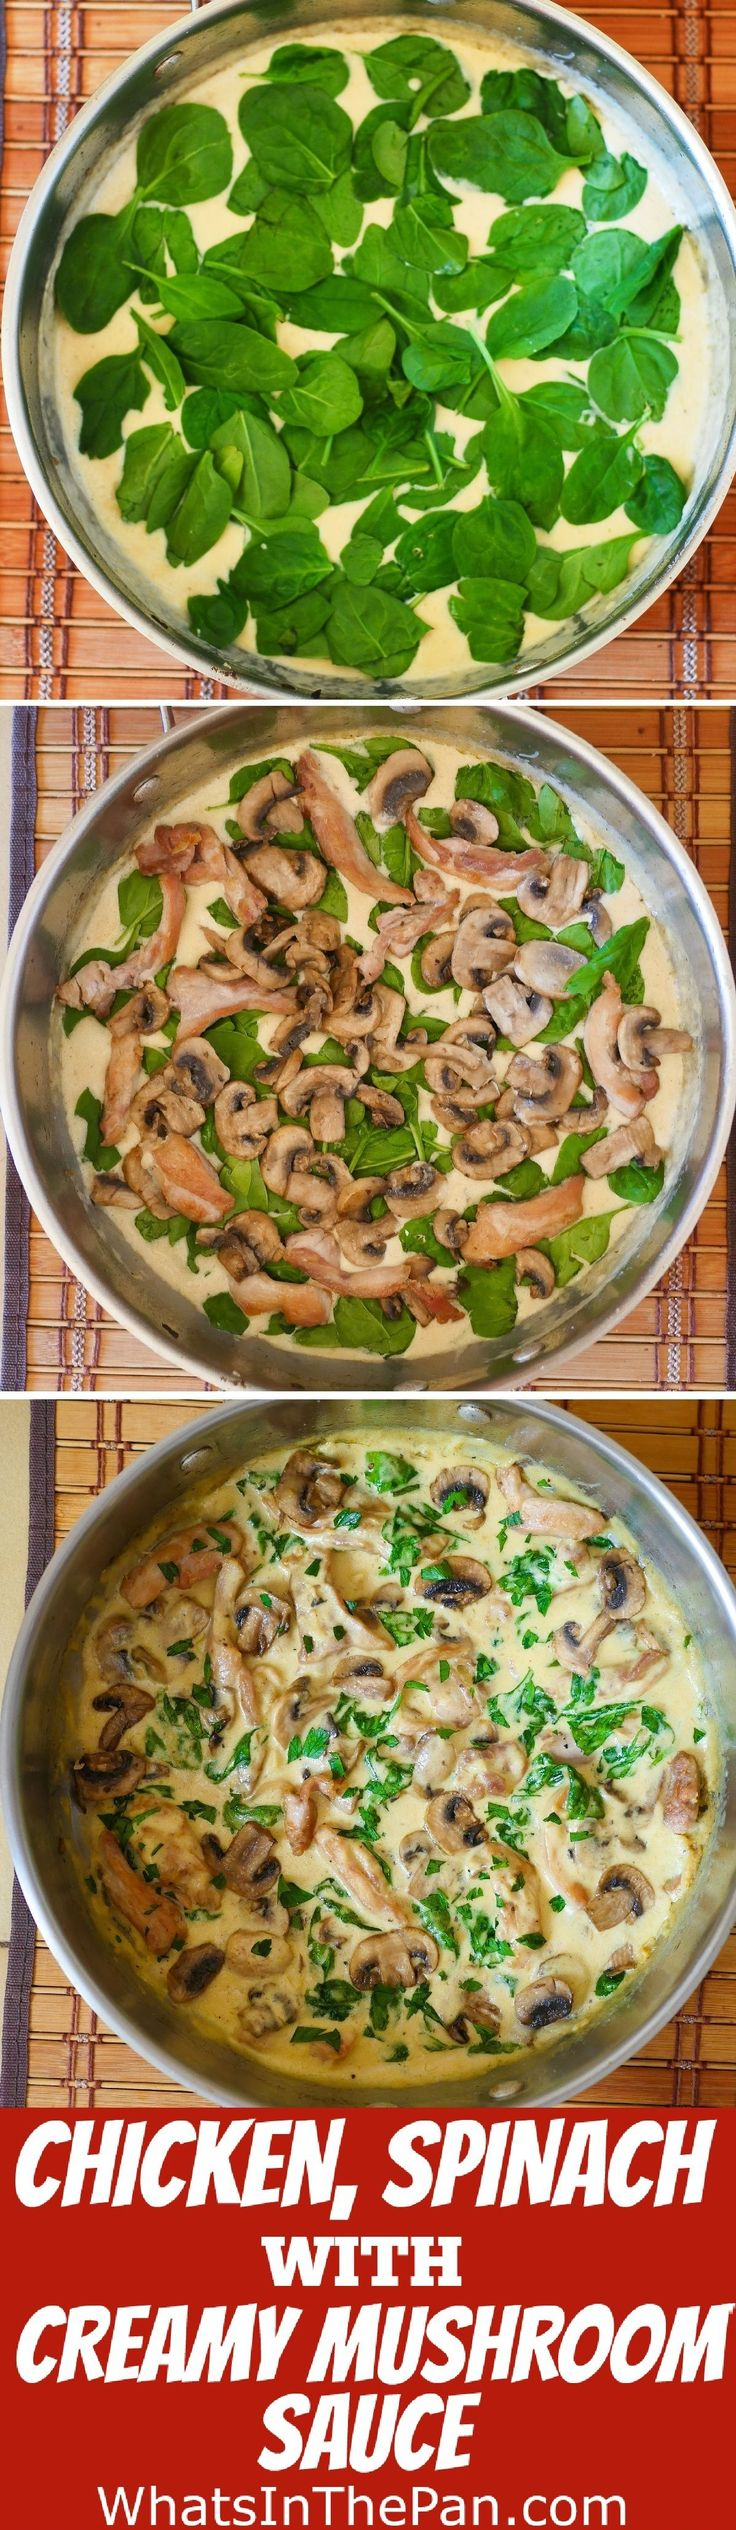 Chicken and Spinach in Creamy Mushroom Sauce - easy weeknight dinner recipe.